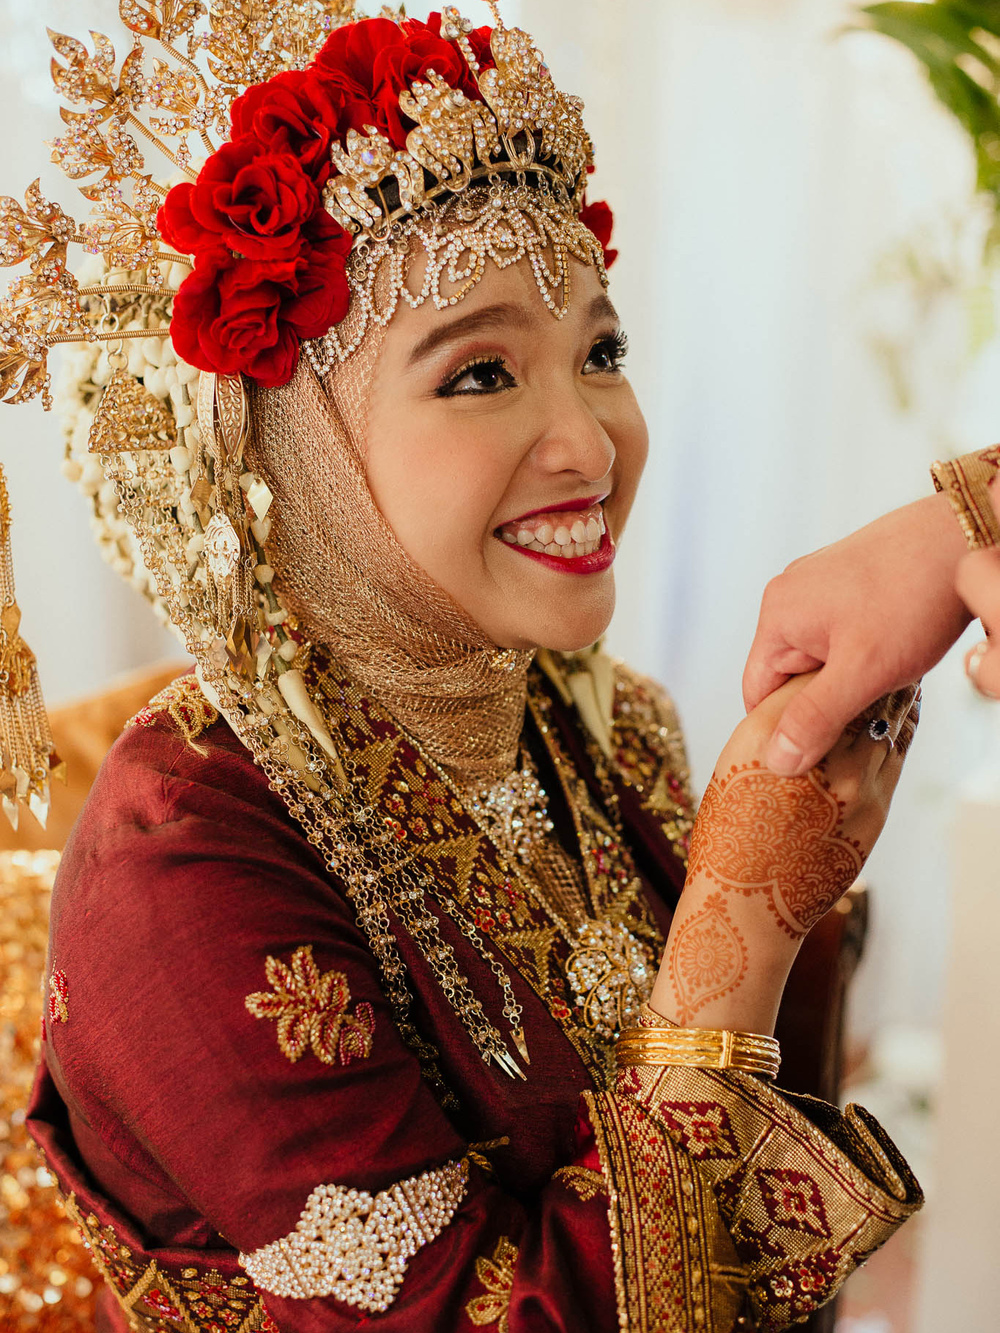 singapore-wedding-photographer-travel-wemadethese-atara-hafizah-53.jpg